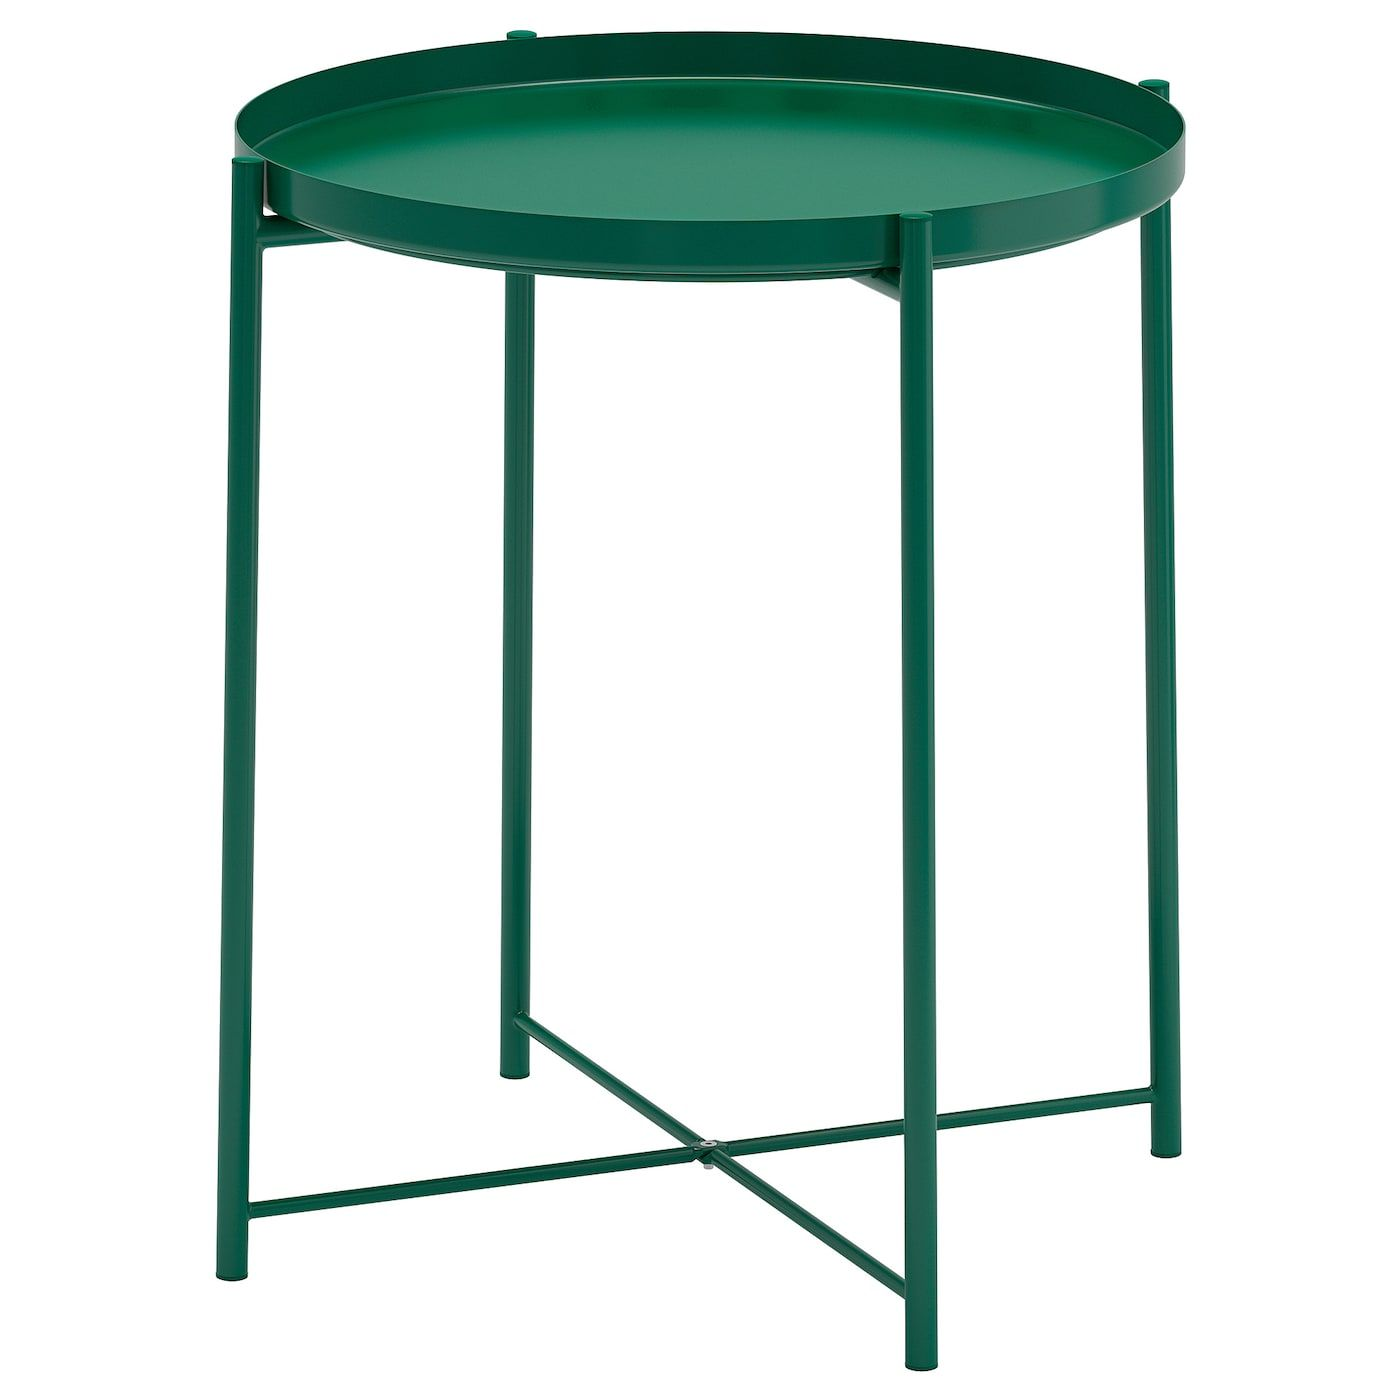 Gladom Tray Table Green 17 1 2x20 5 8 In 2020 With Images